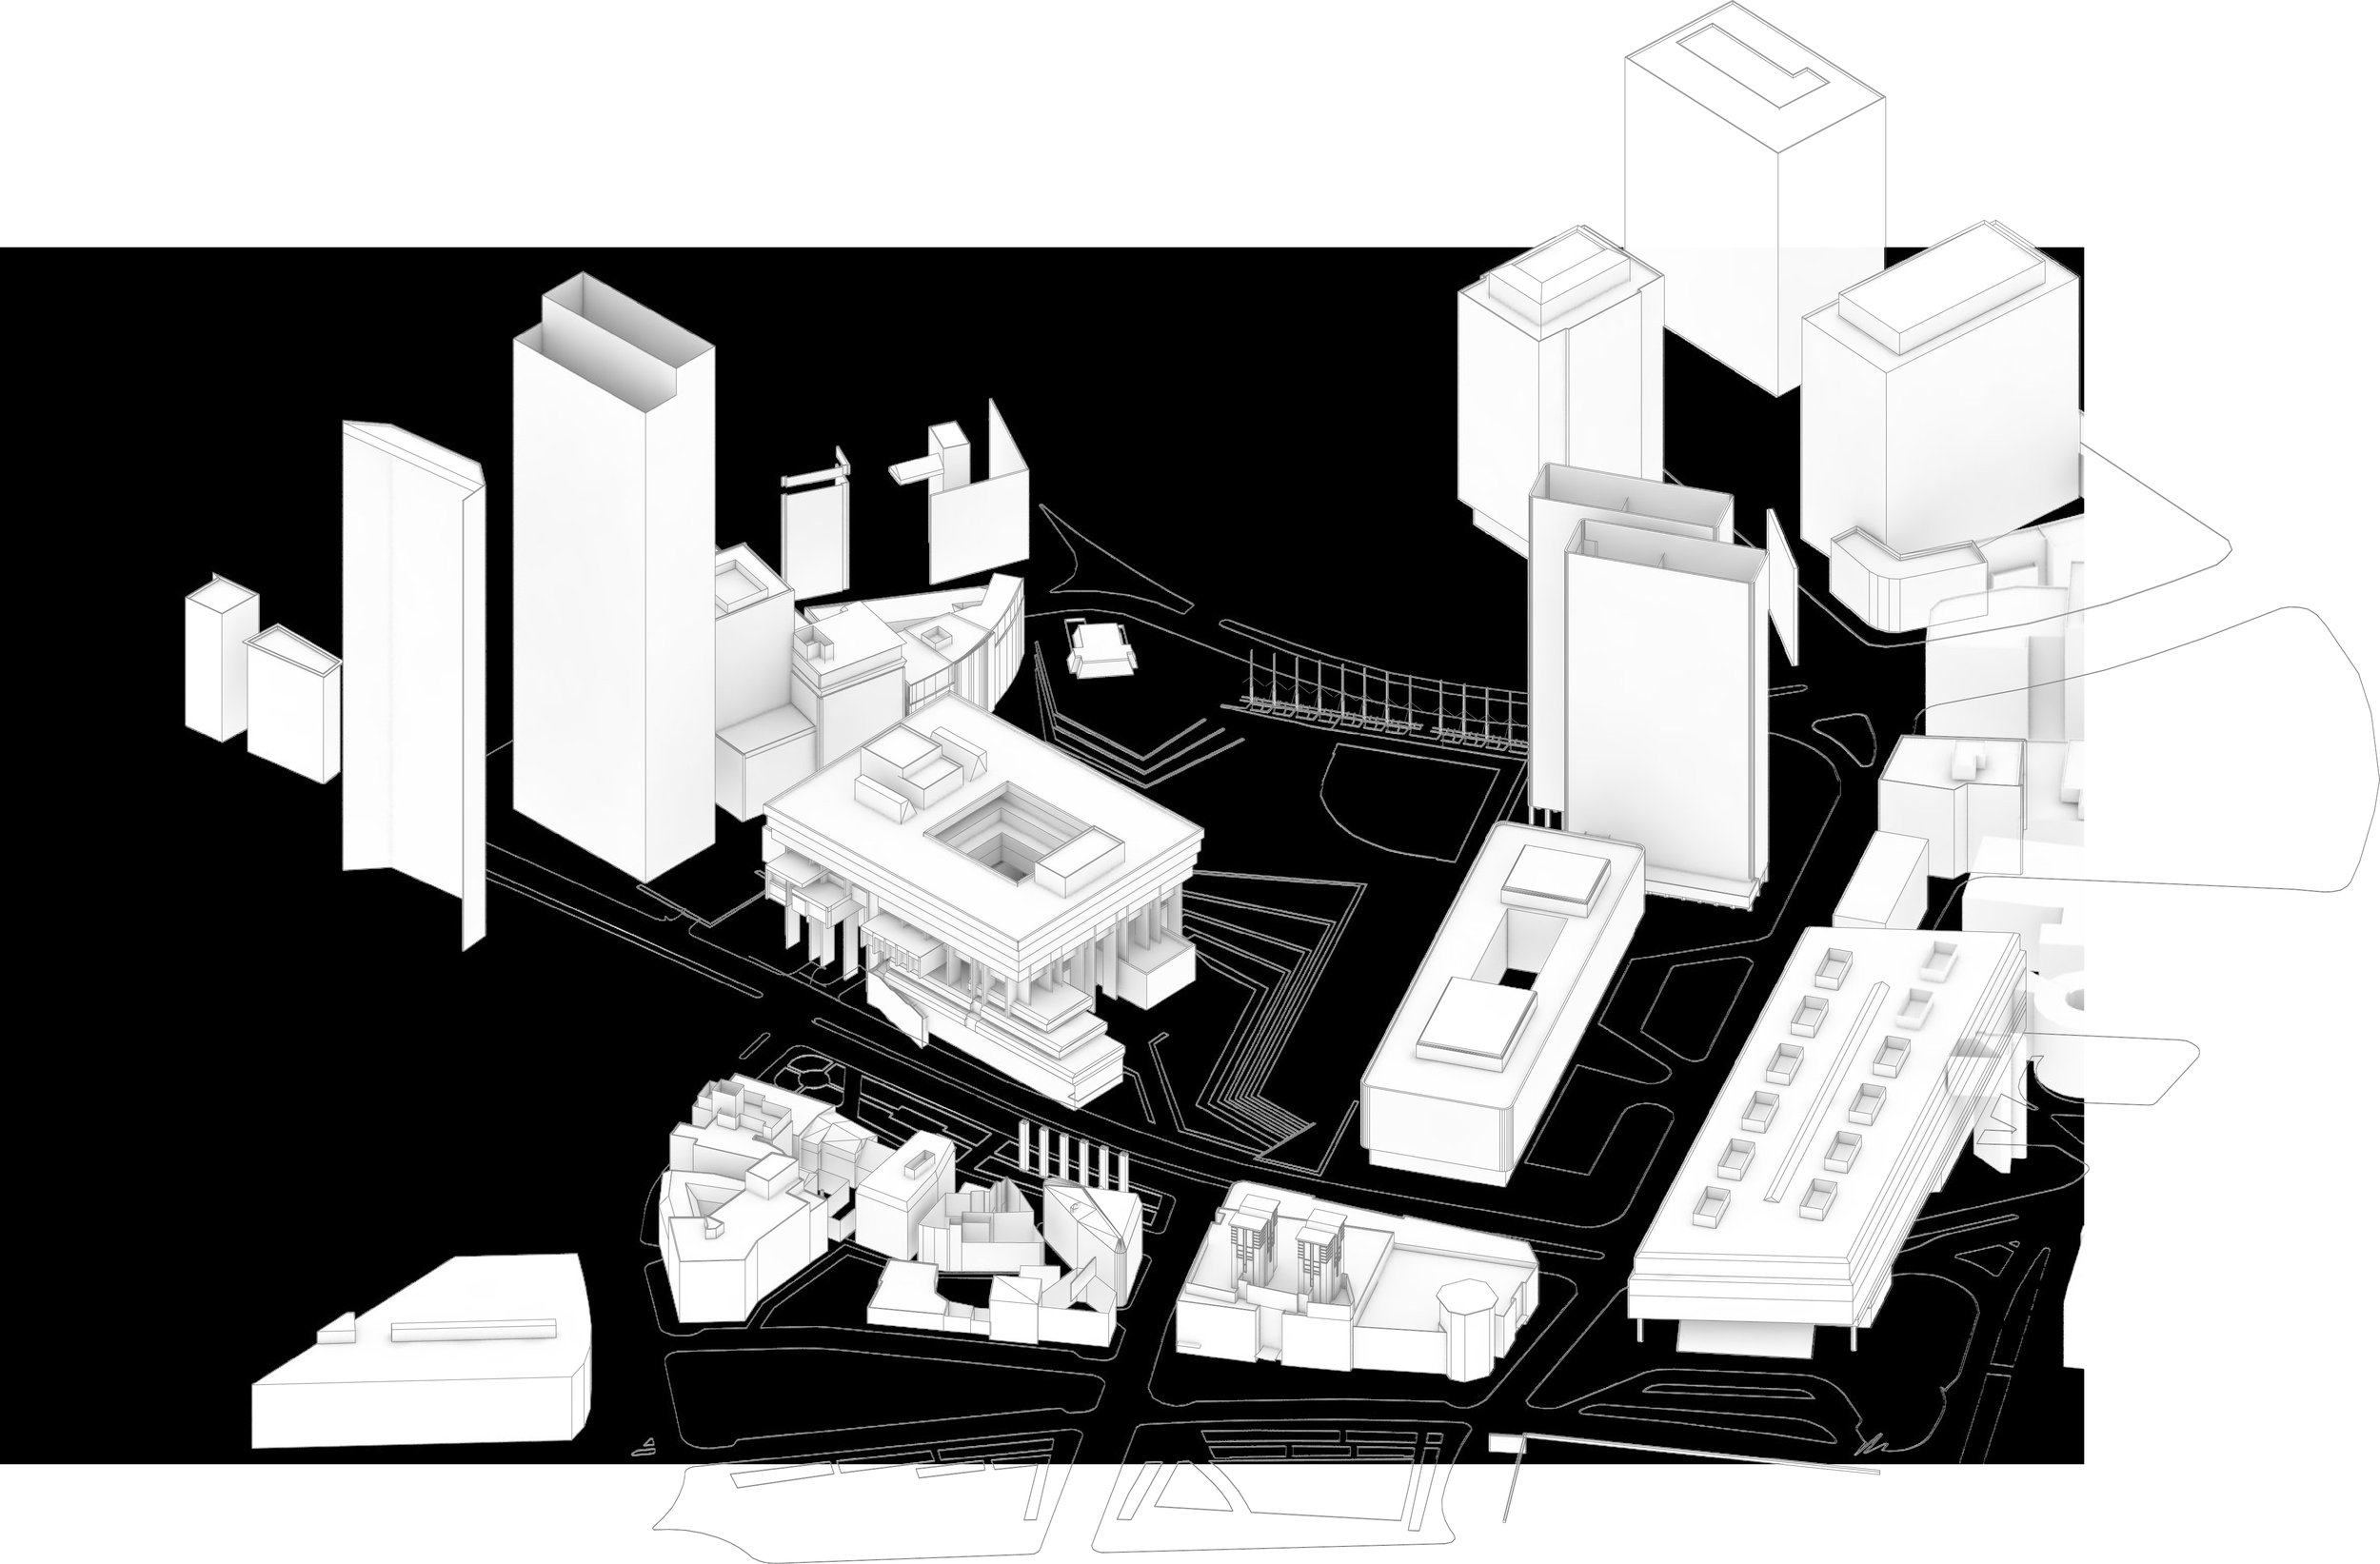 Paul Rudolph's government center is designed for the people